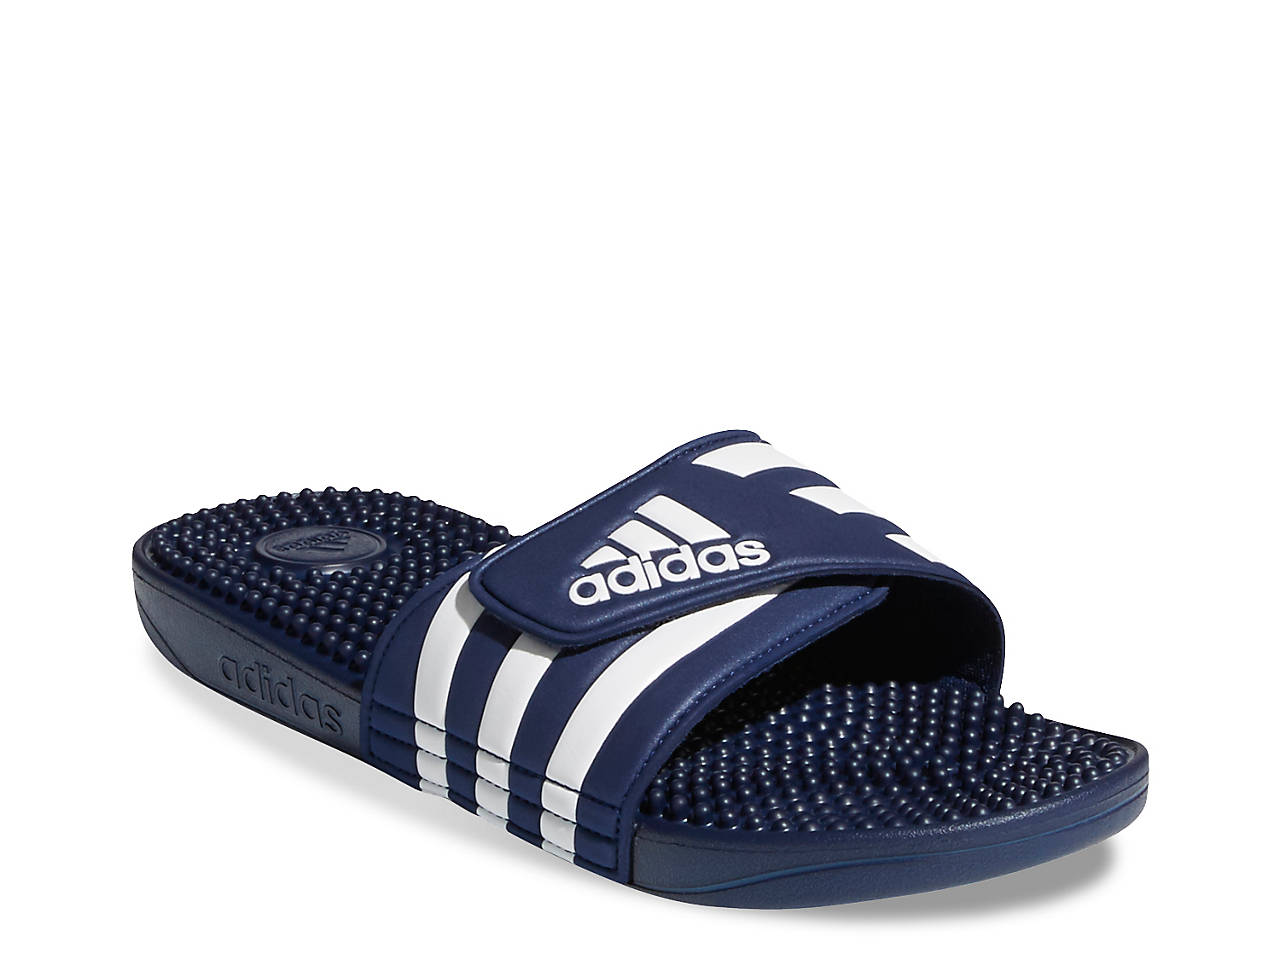 035b6f836 adidas Adissage Slide Sandal - Men s Men s Shoes